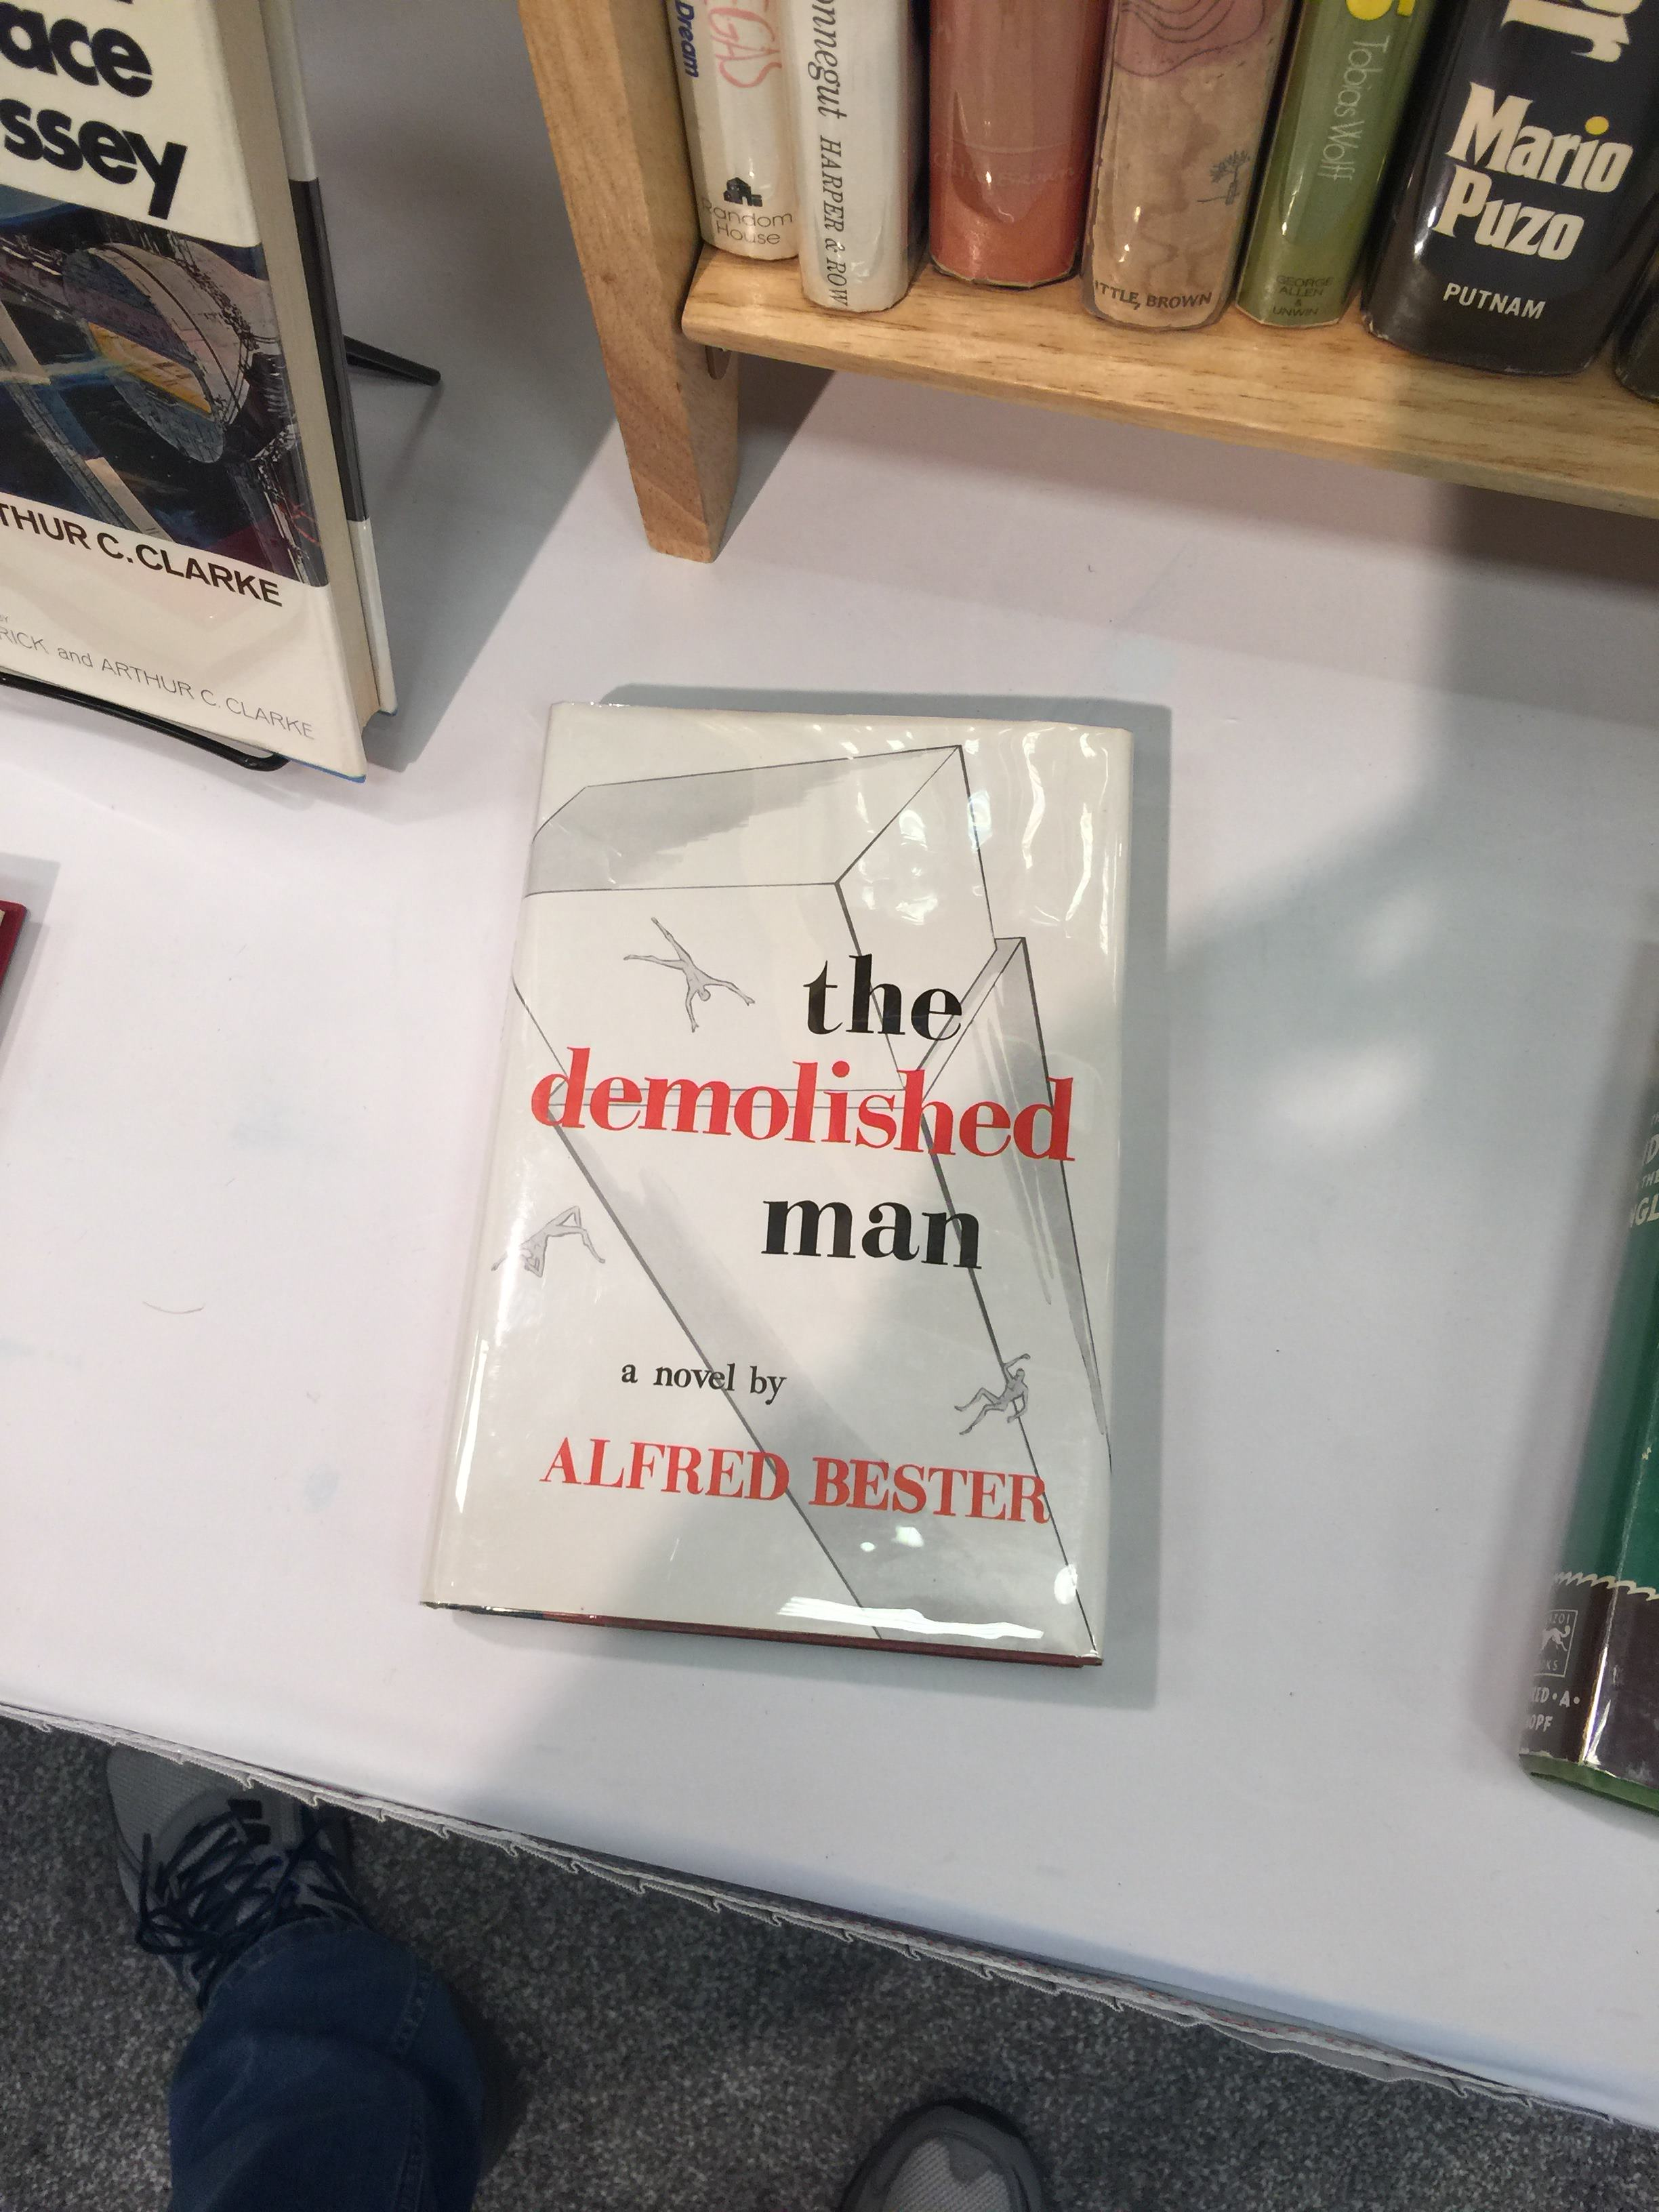 Alfred Bester's The Demolished Man first edition (Story originally appeared in Galaxy magazine)